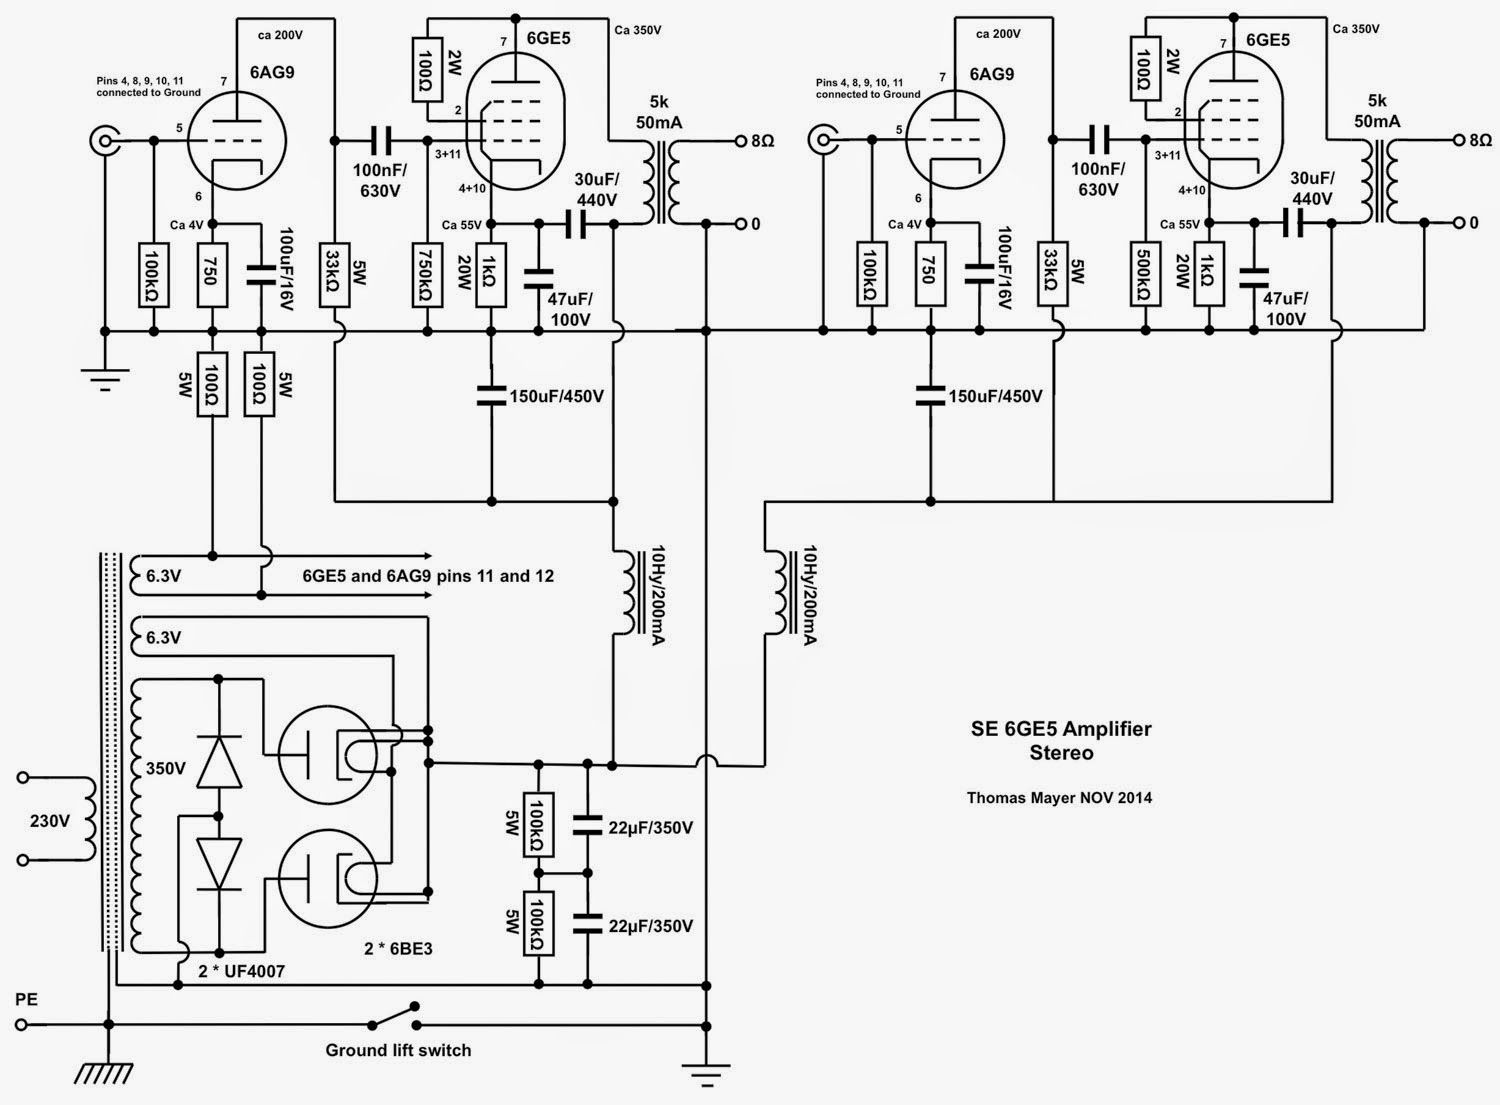 Vinylsavor 6ge5 Stereo Amplifier Part 1 Circuit